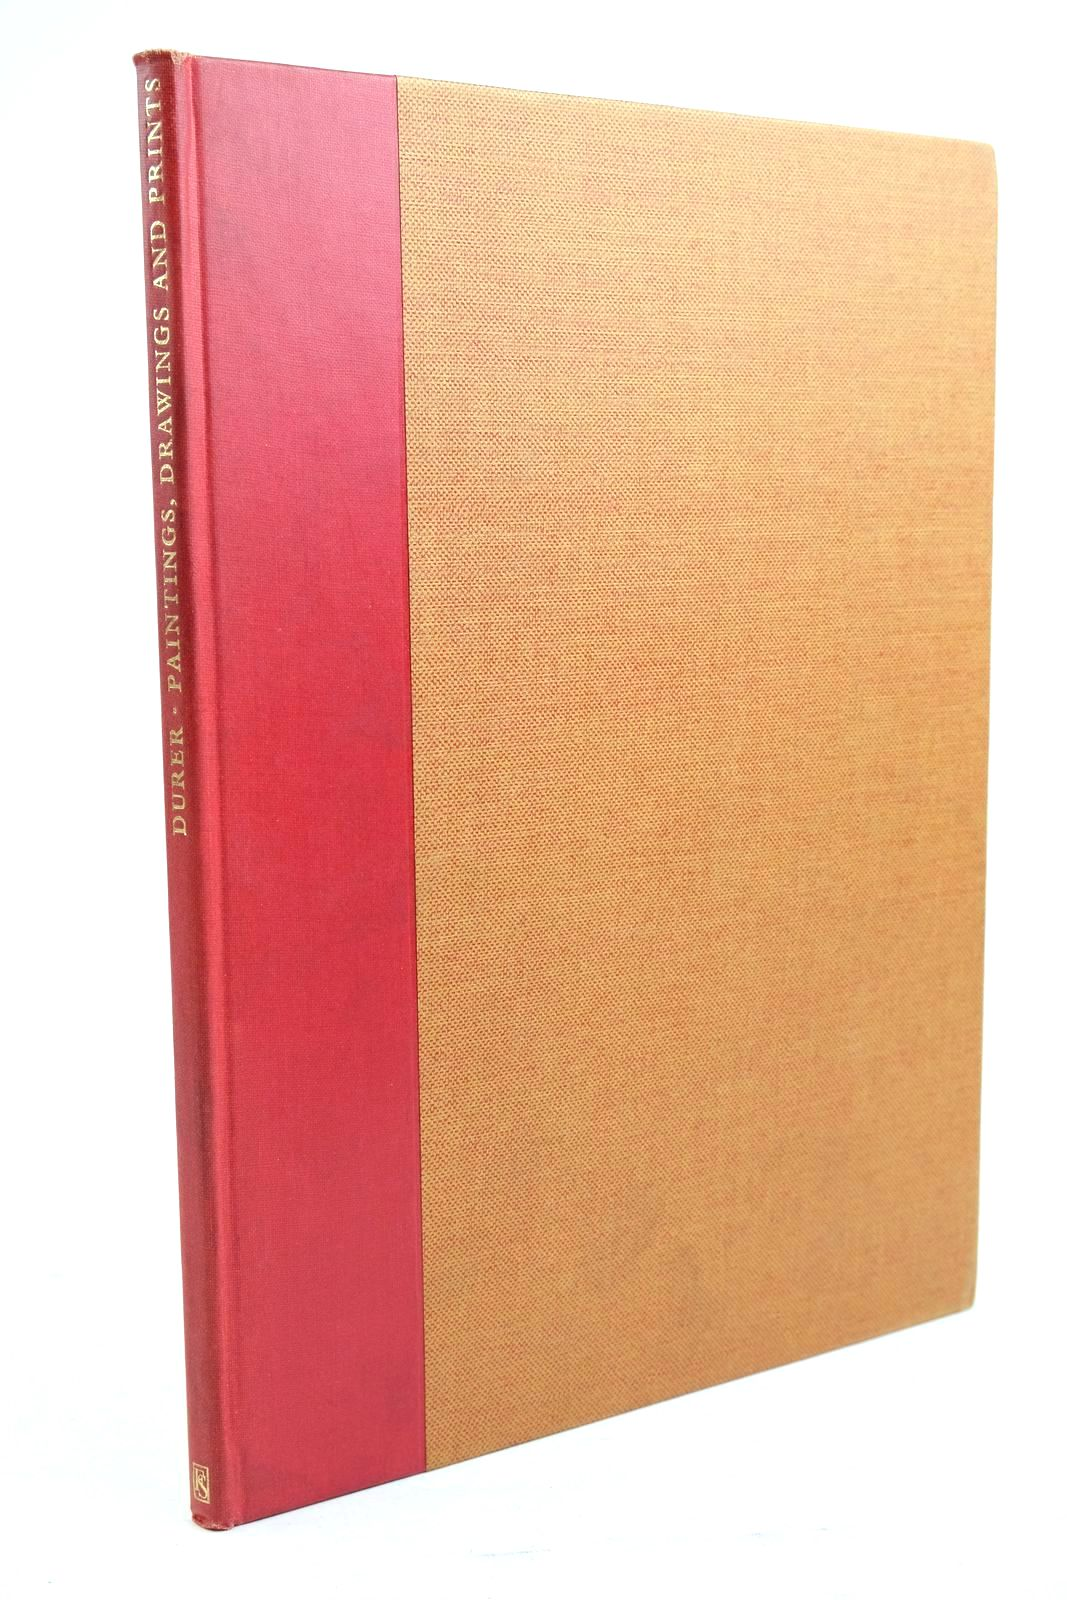 Photo of ALBRECHT DURER: PAINTINGS, DRAWINGS AND PRINTS written by Lambourne, Nigel published by Folio Society (STOCK CODE: 1320919)  for sale by Stella & Rose's Books